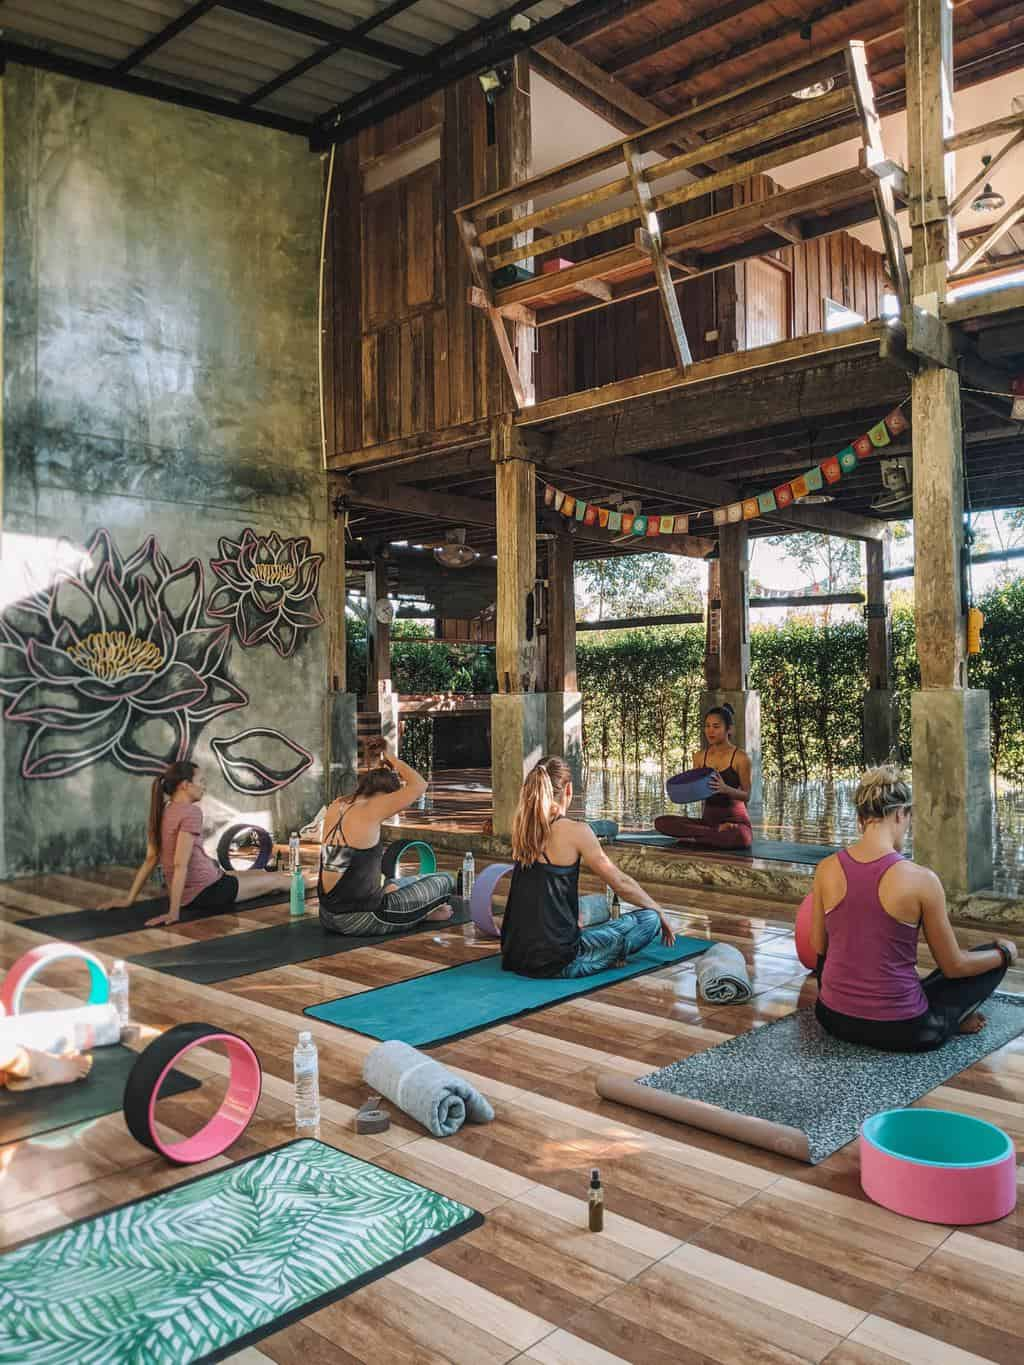 a G Adventures group sitting on yoga mats waiting to begin a yoga lesson in a contemporary yoga studio, wellness tourism